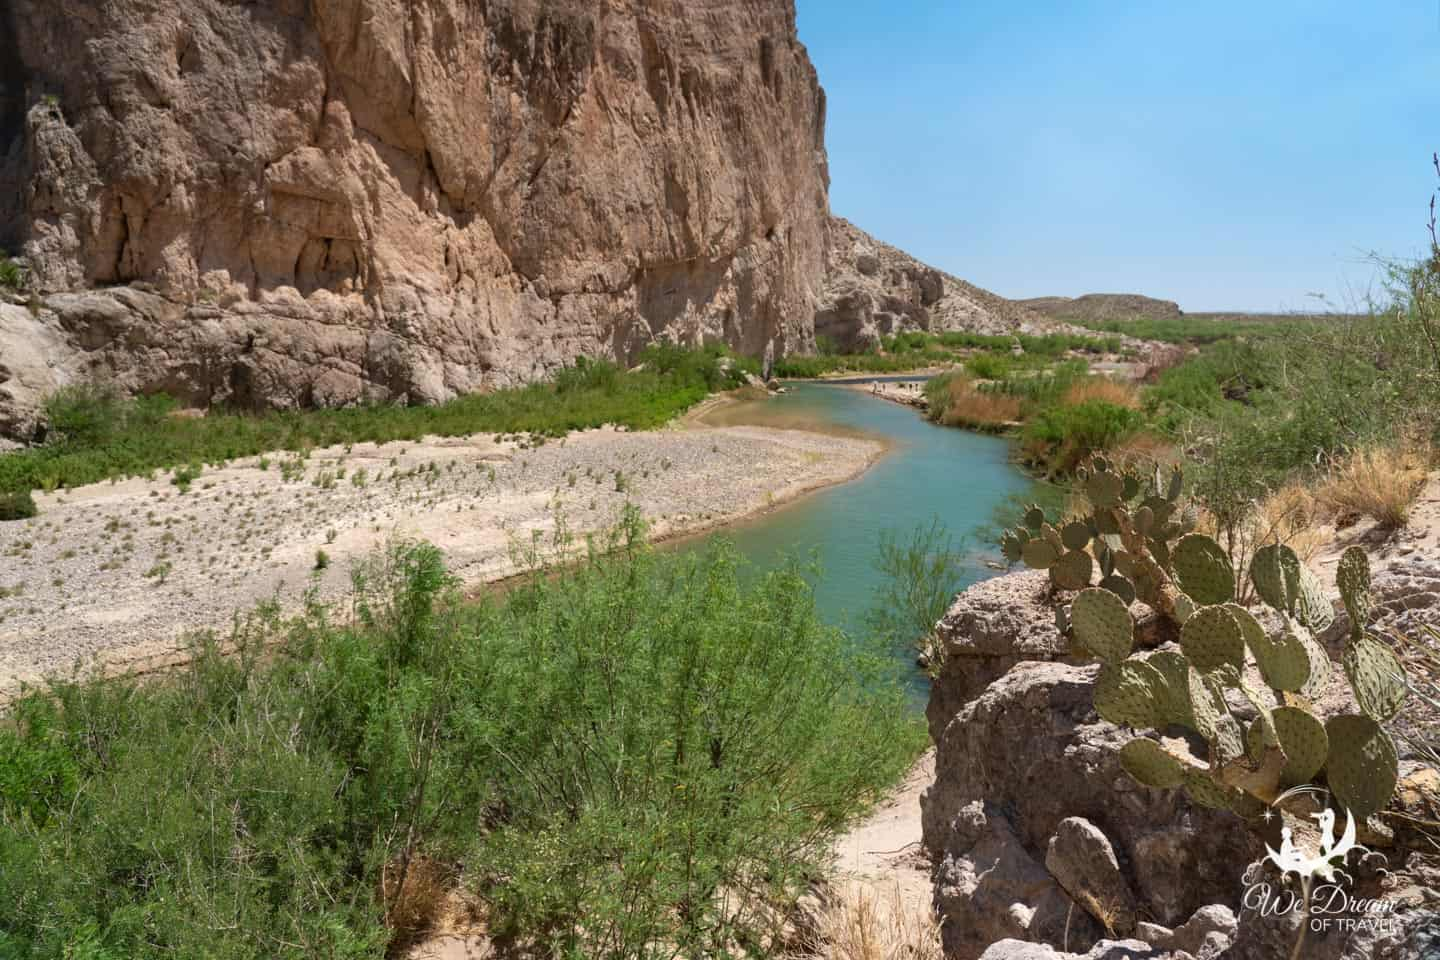 Big Bend national park picture capturing the green water and limestone cliffs from the Boquillas Canyon.